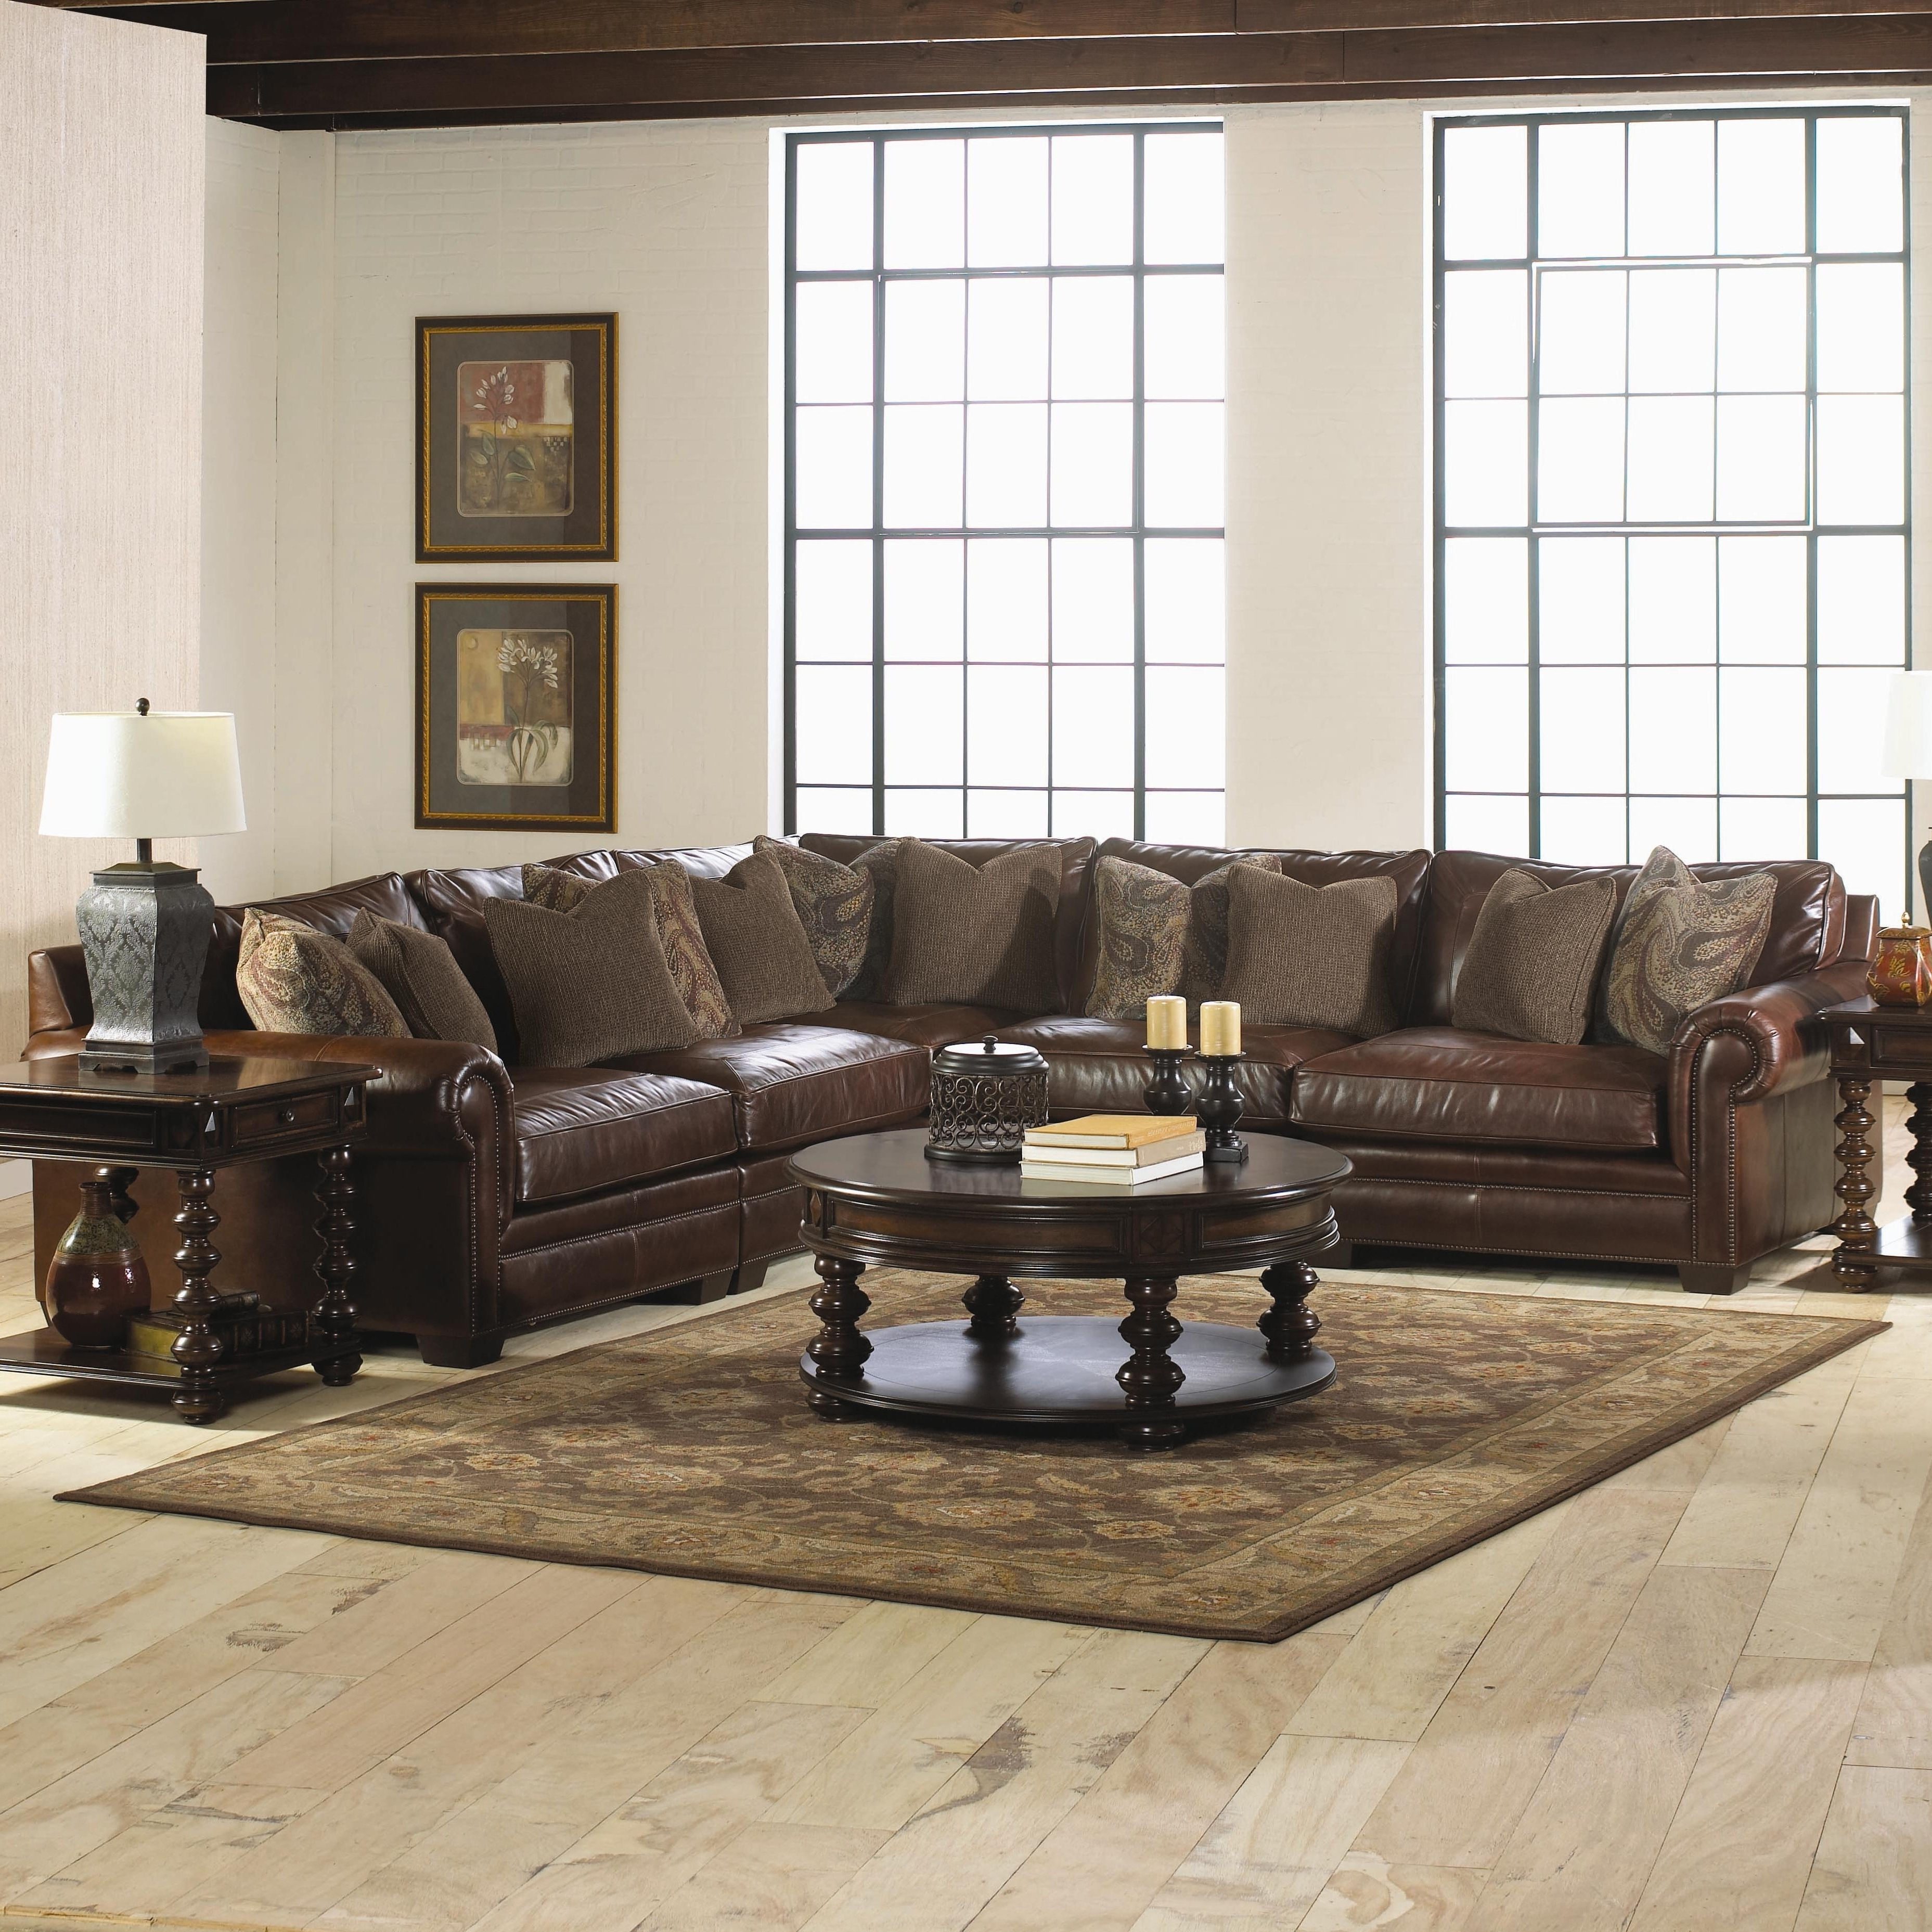 Collection Havertys Sectional Sofas – Mediasupload Intended For Most Up To Date Sectional Sofas At Havertys (View 18 of 20)